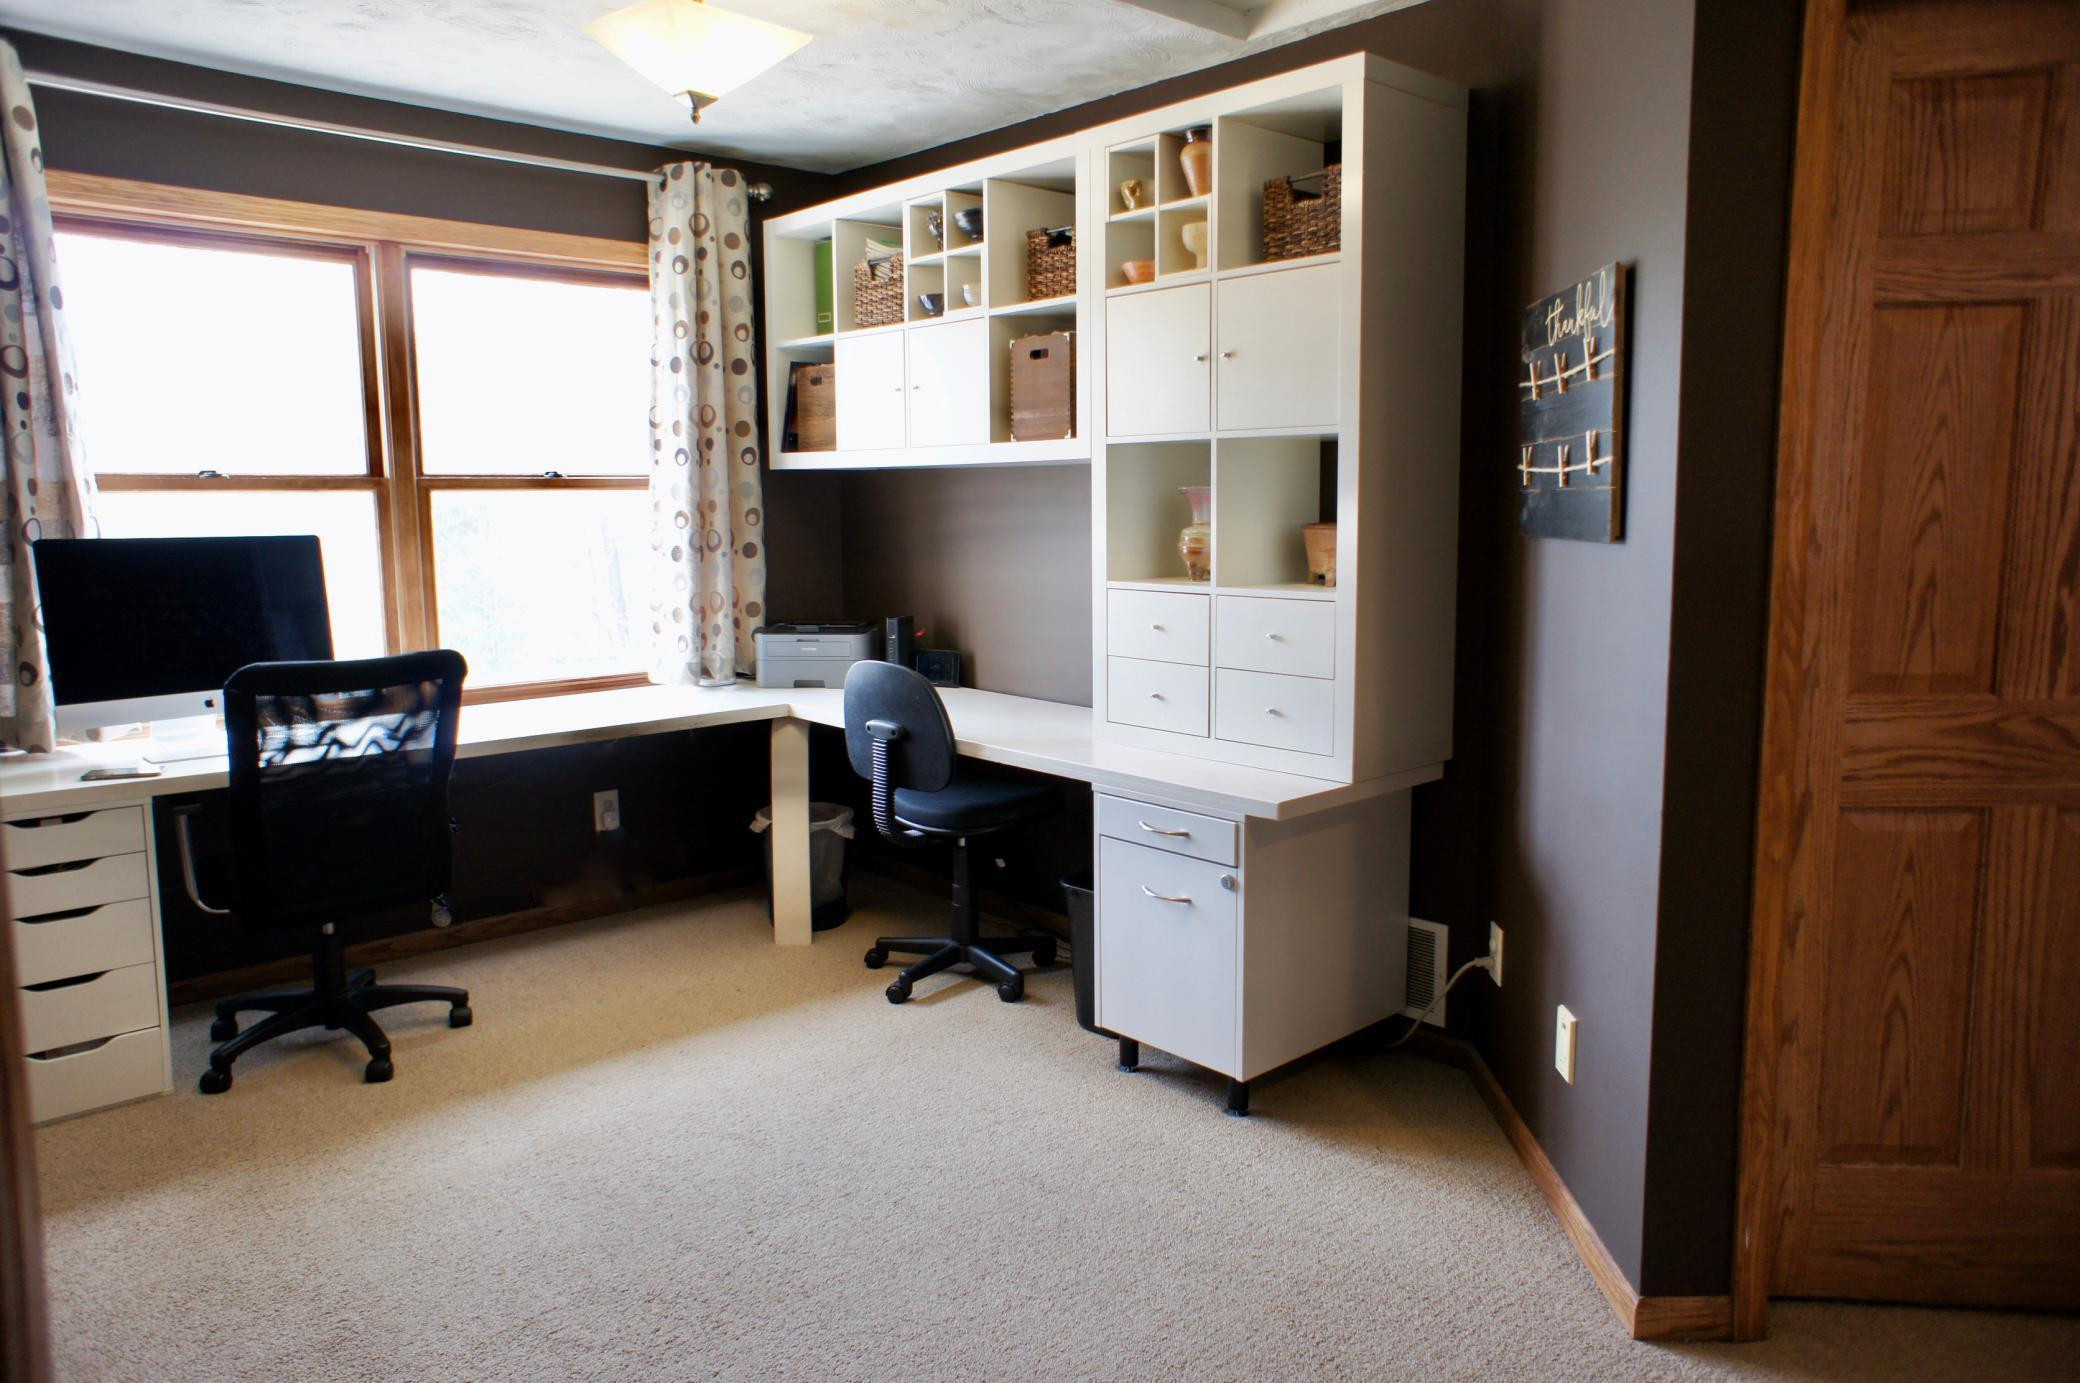 The loft features spacious built in shelving and desk space.